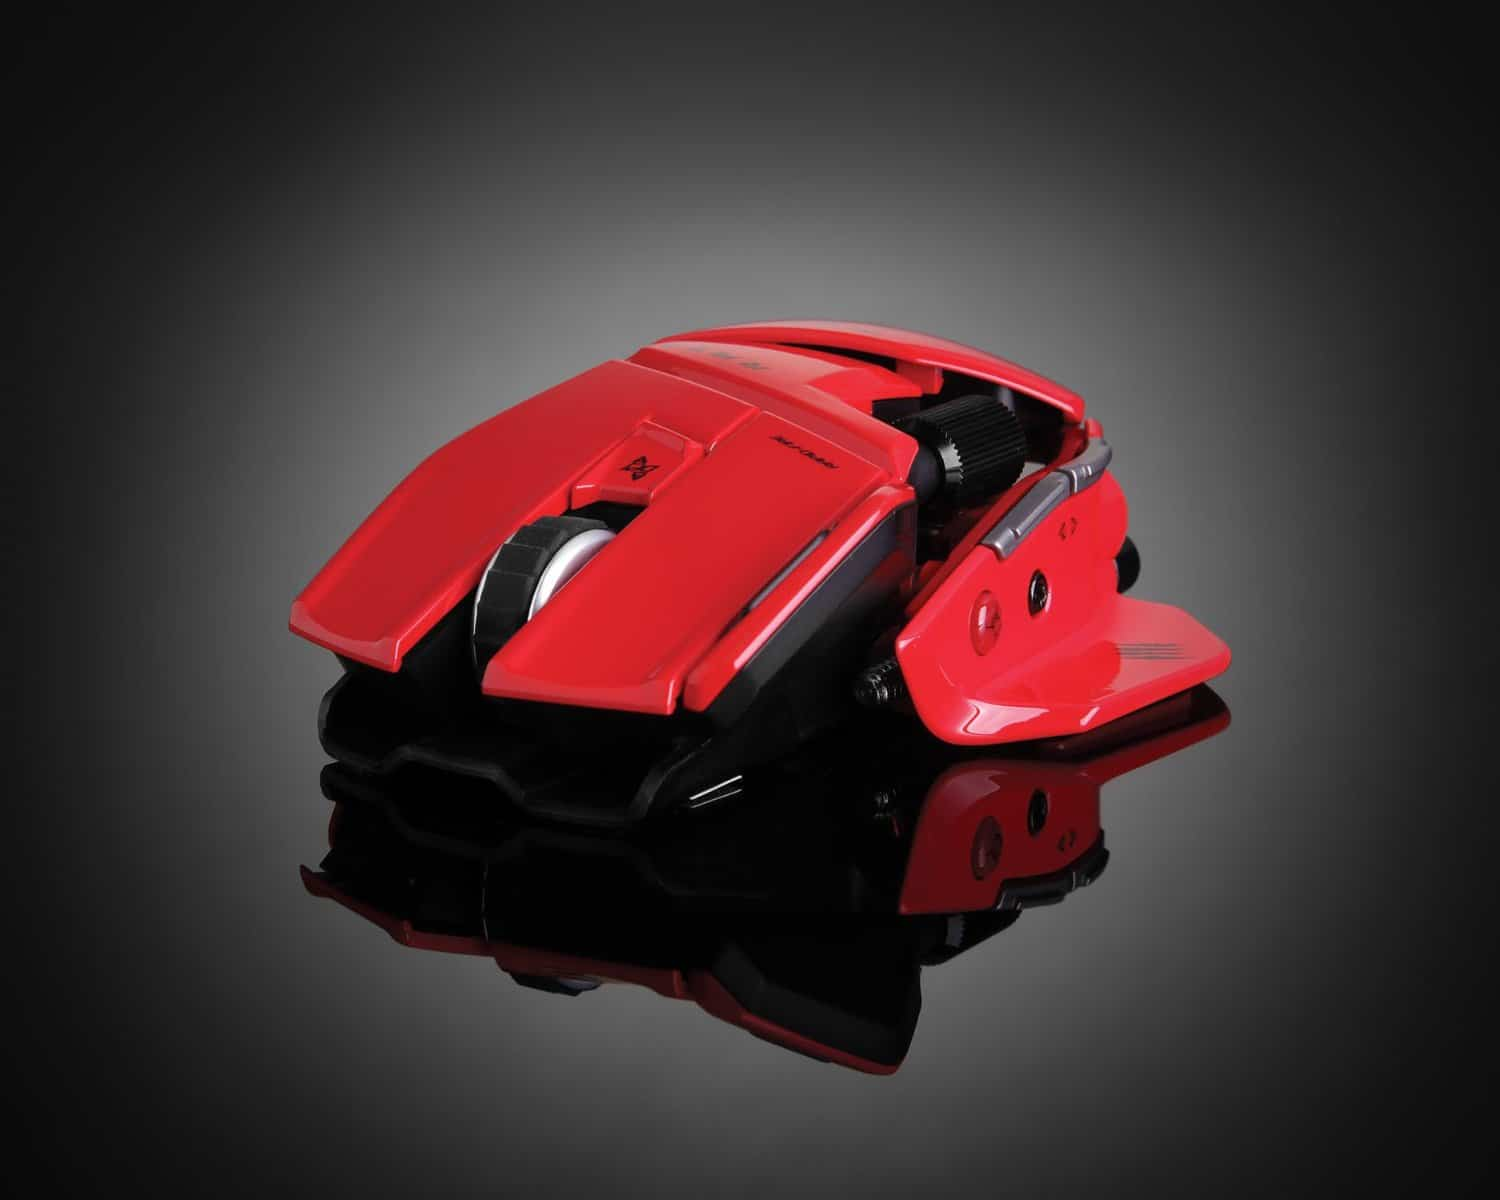 Mad Catz R.A.T.9 Gaming Mouse Futuristic